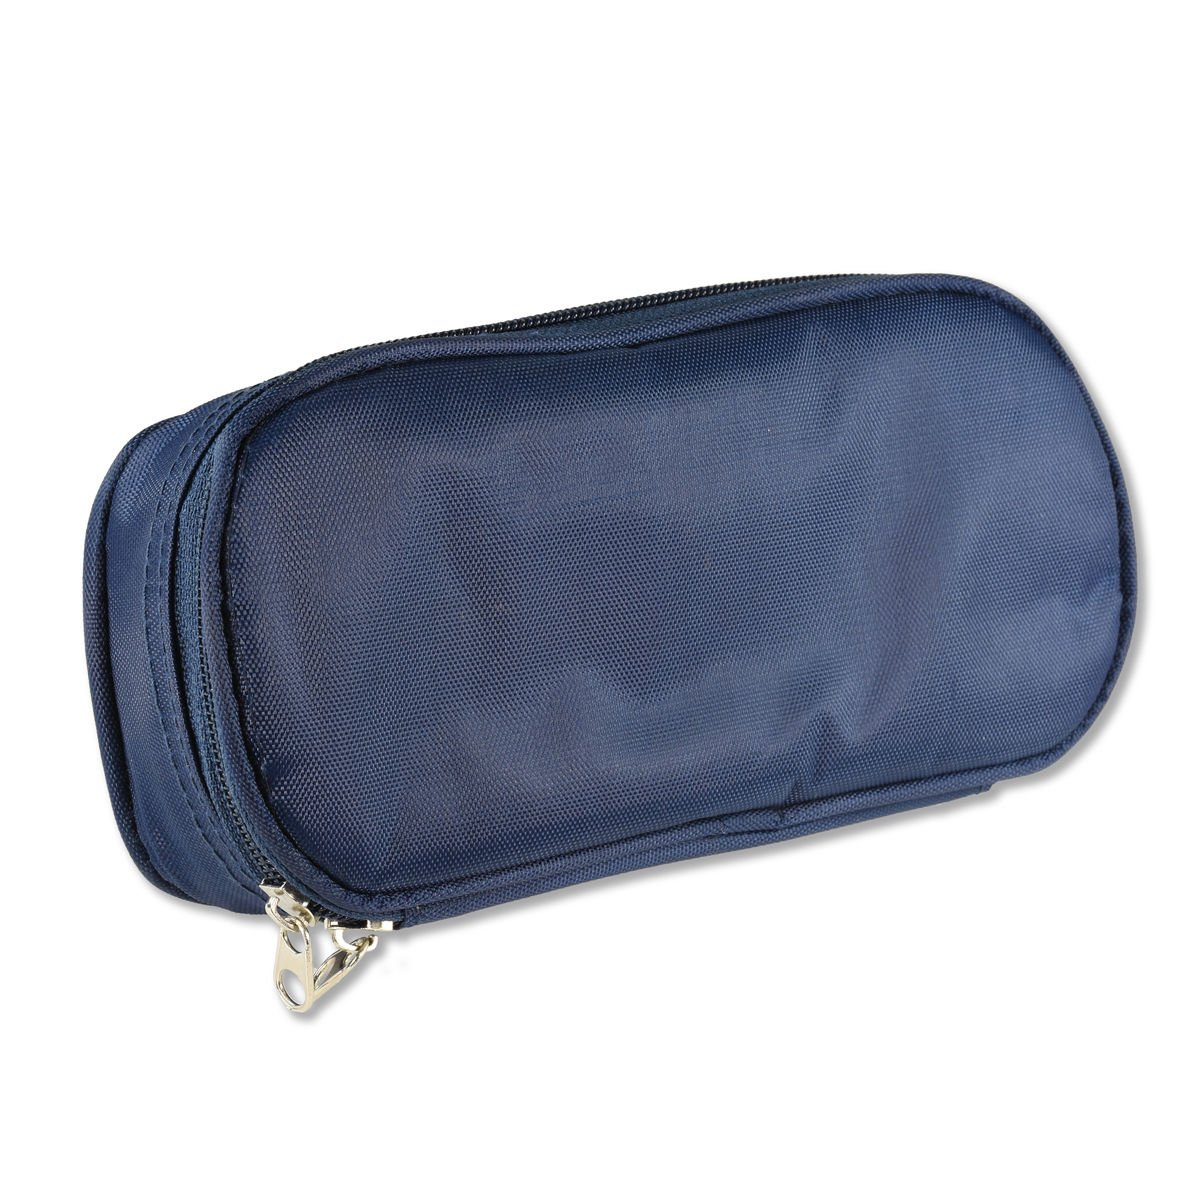 ChillMED Micro Cooler - Diabetic Insulin Vial Carrying Case Travel Pack (Blue)